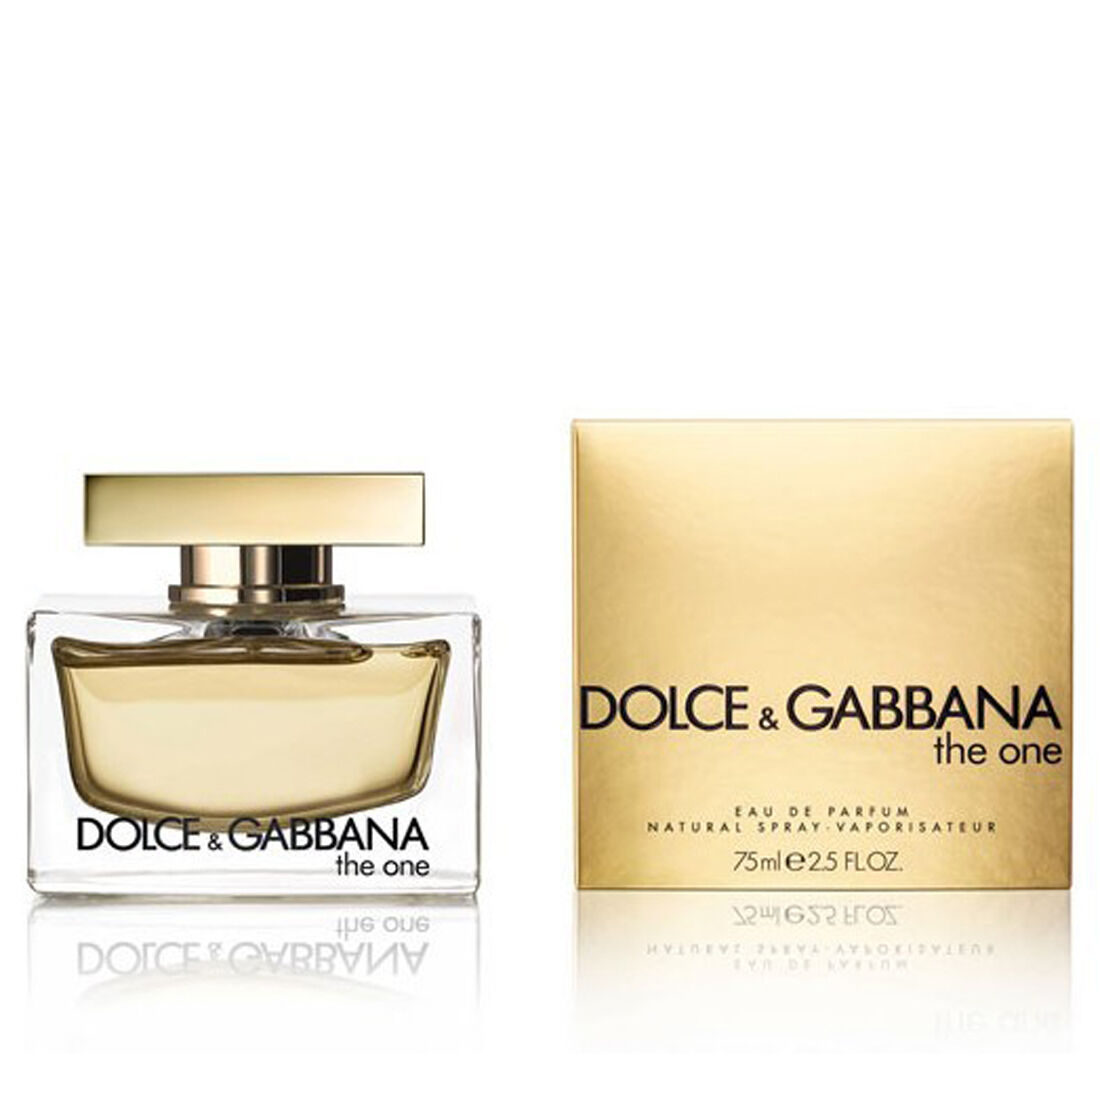 9c273194fe3cfb Details about THE ONE DOLCE   GABBANA - Cologne   Perfume EDP 75 mL - Woman    Woman   Femme